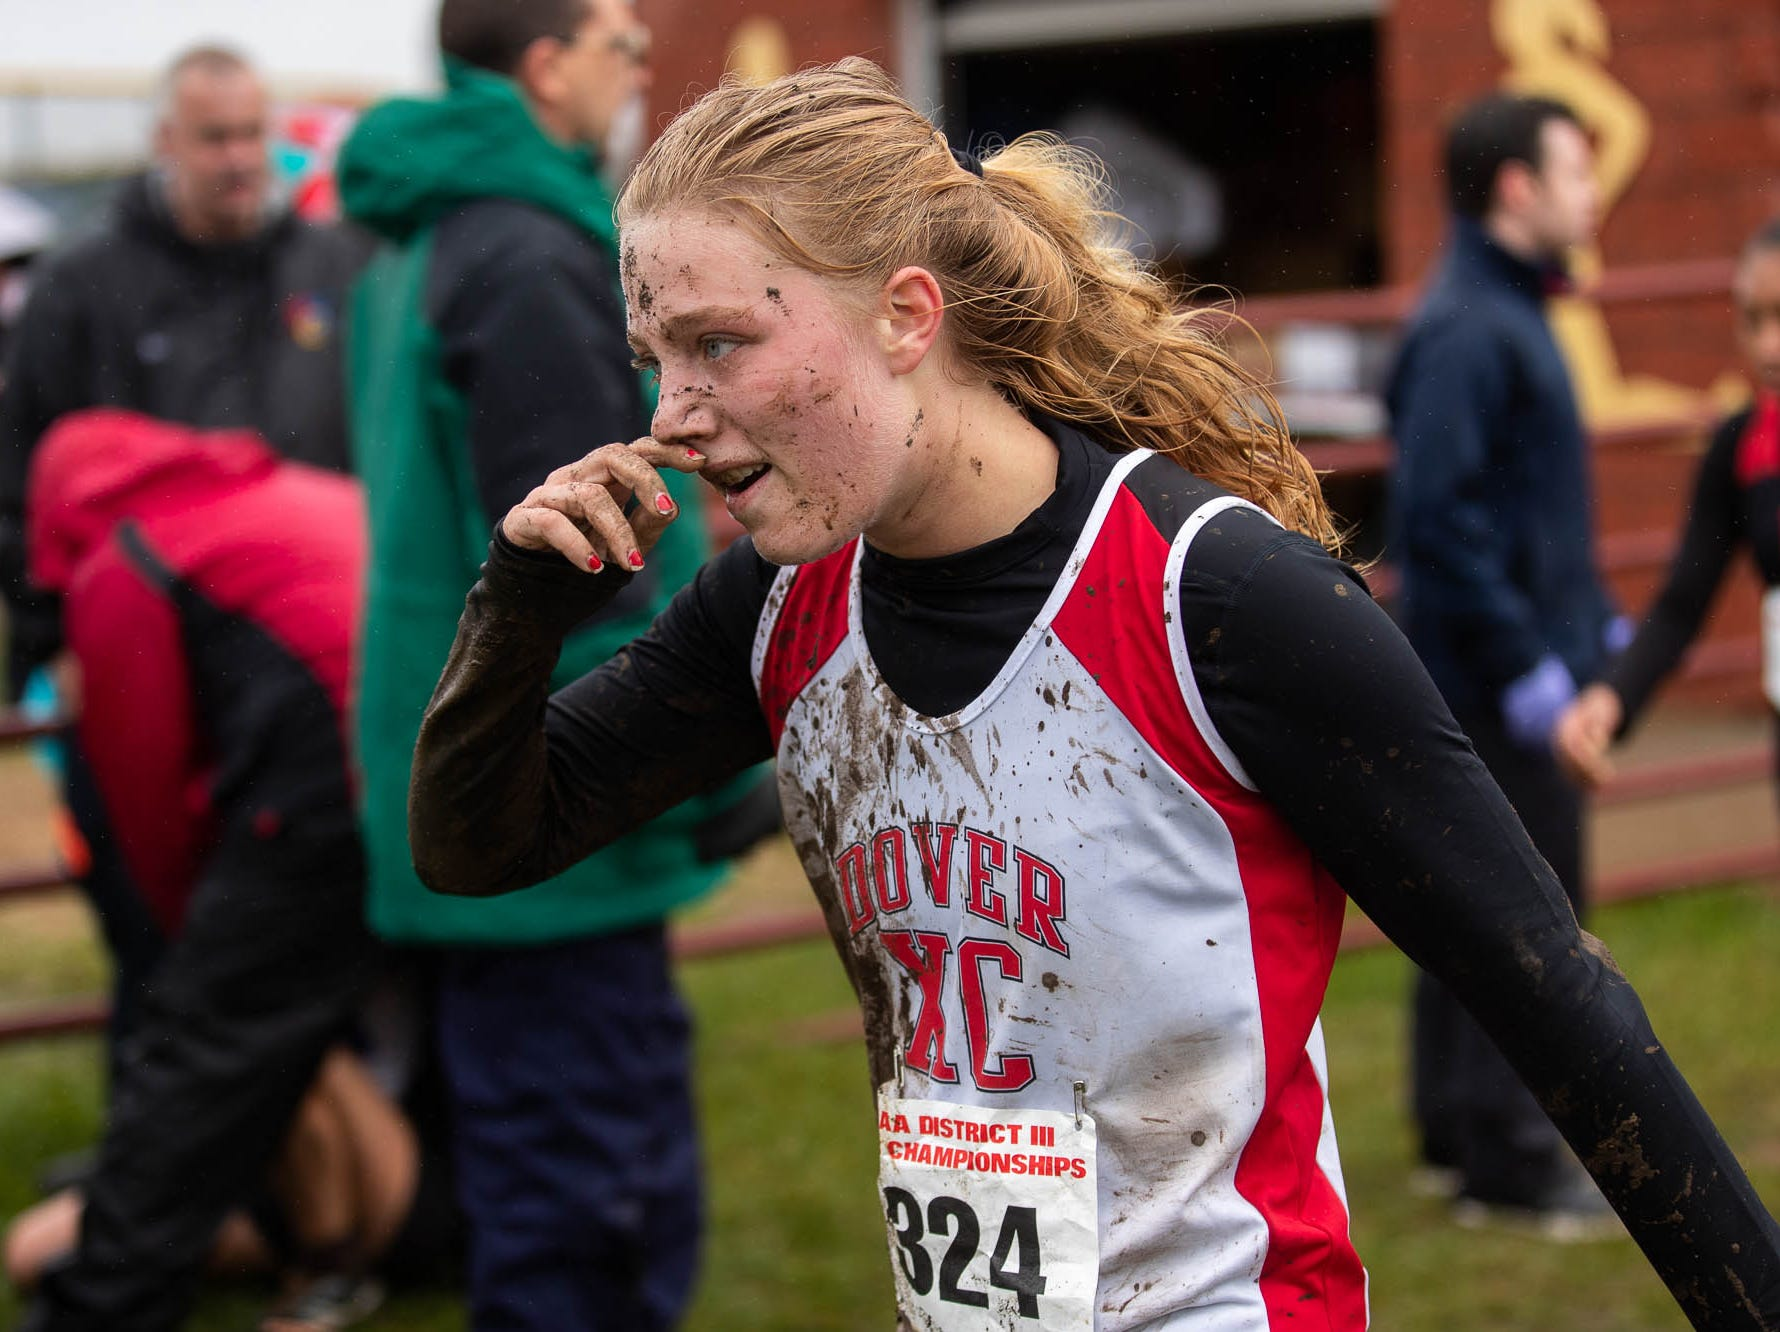 Dover's Emma Burr (324) wipes mud from her face after finishing the Girls AAA race during the PIAA District III Cross Country Championship, Saturday, Oct. 27, 2018, at Big Spring High School in Newville.